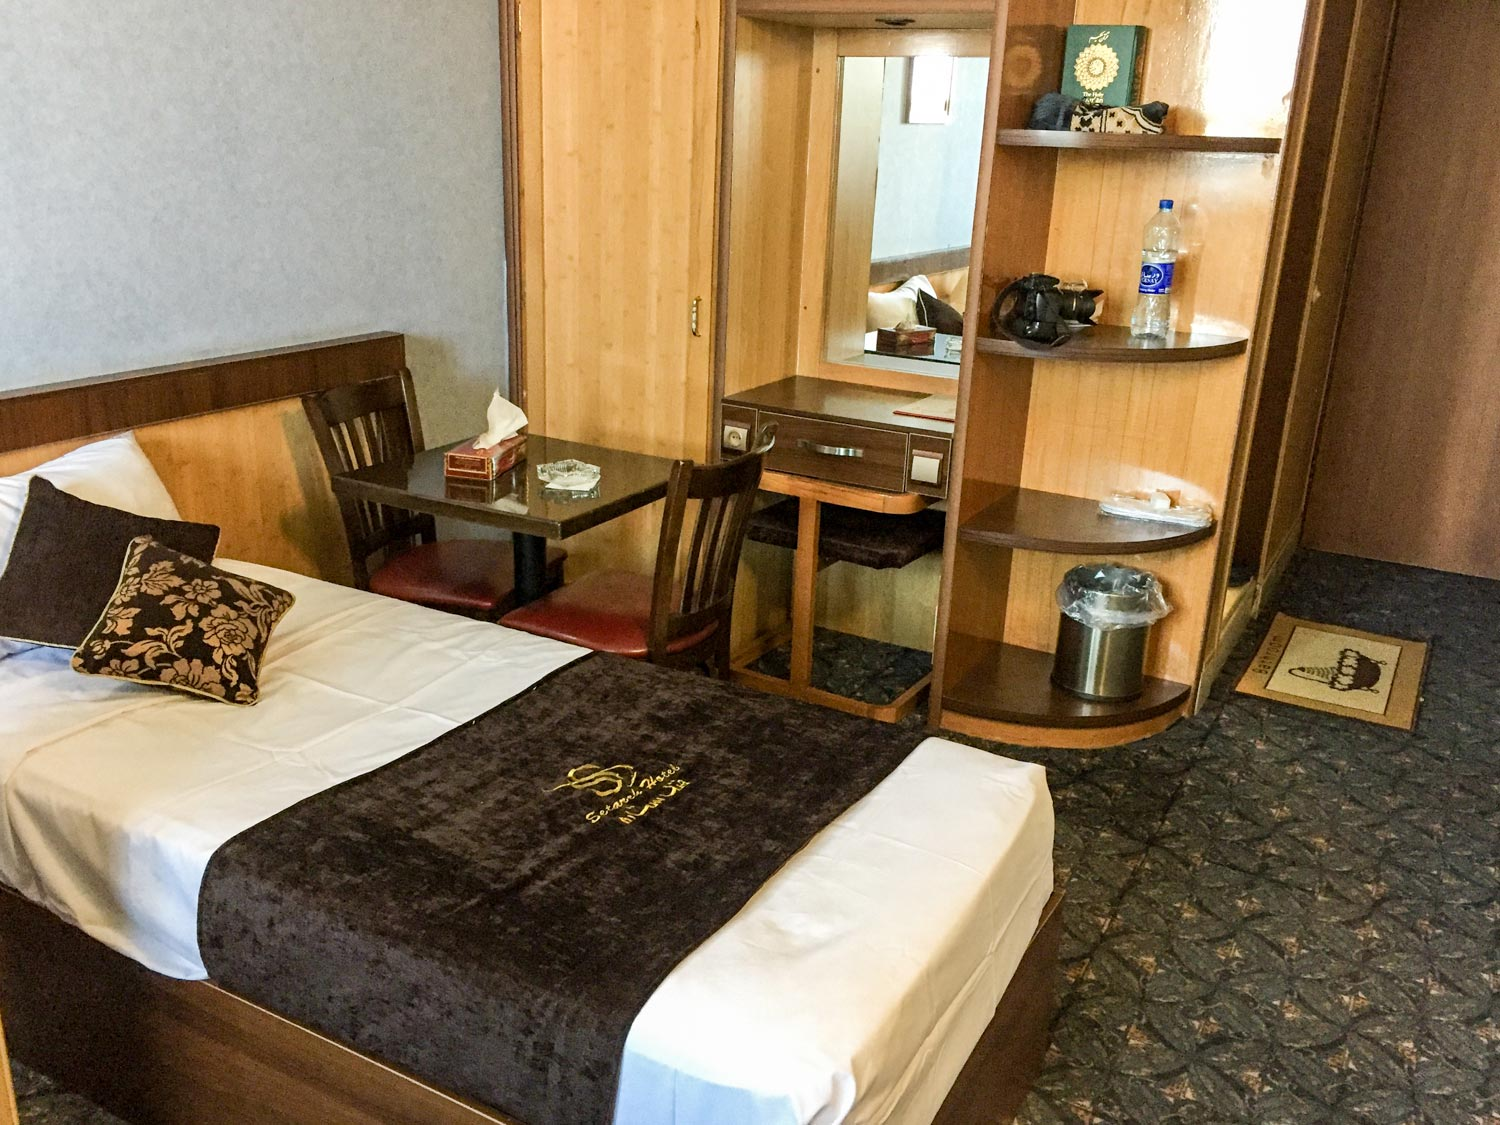 Setarah Hotel Isfahan room with a clean bed and shelves